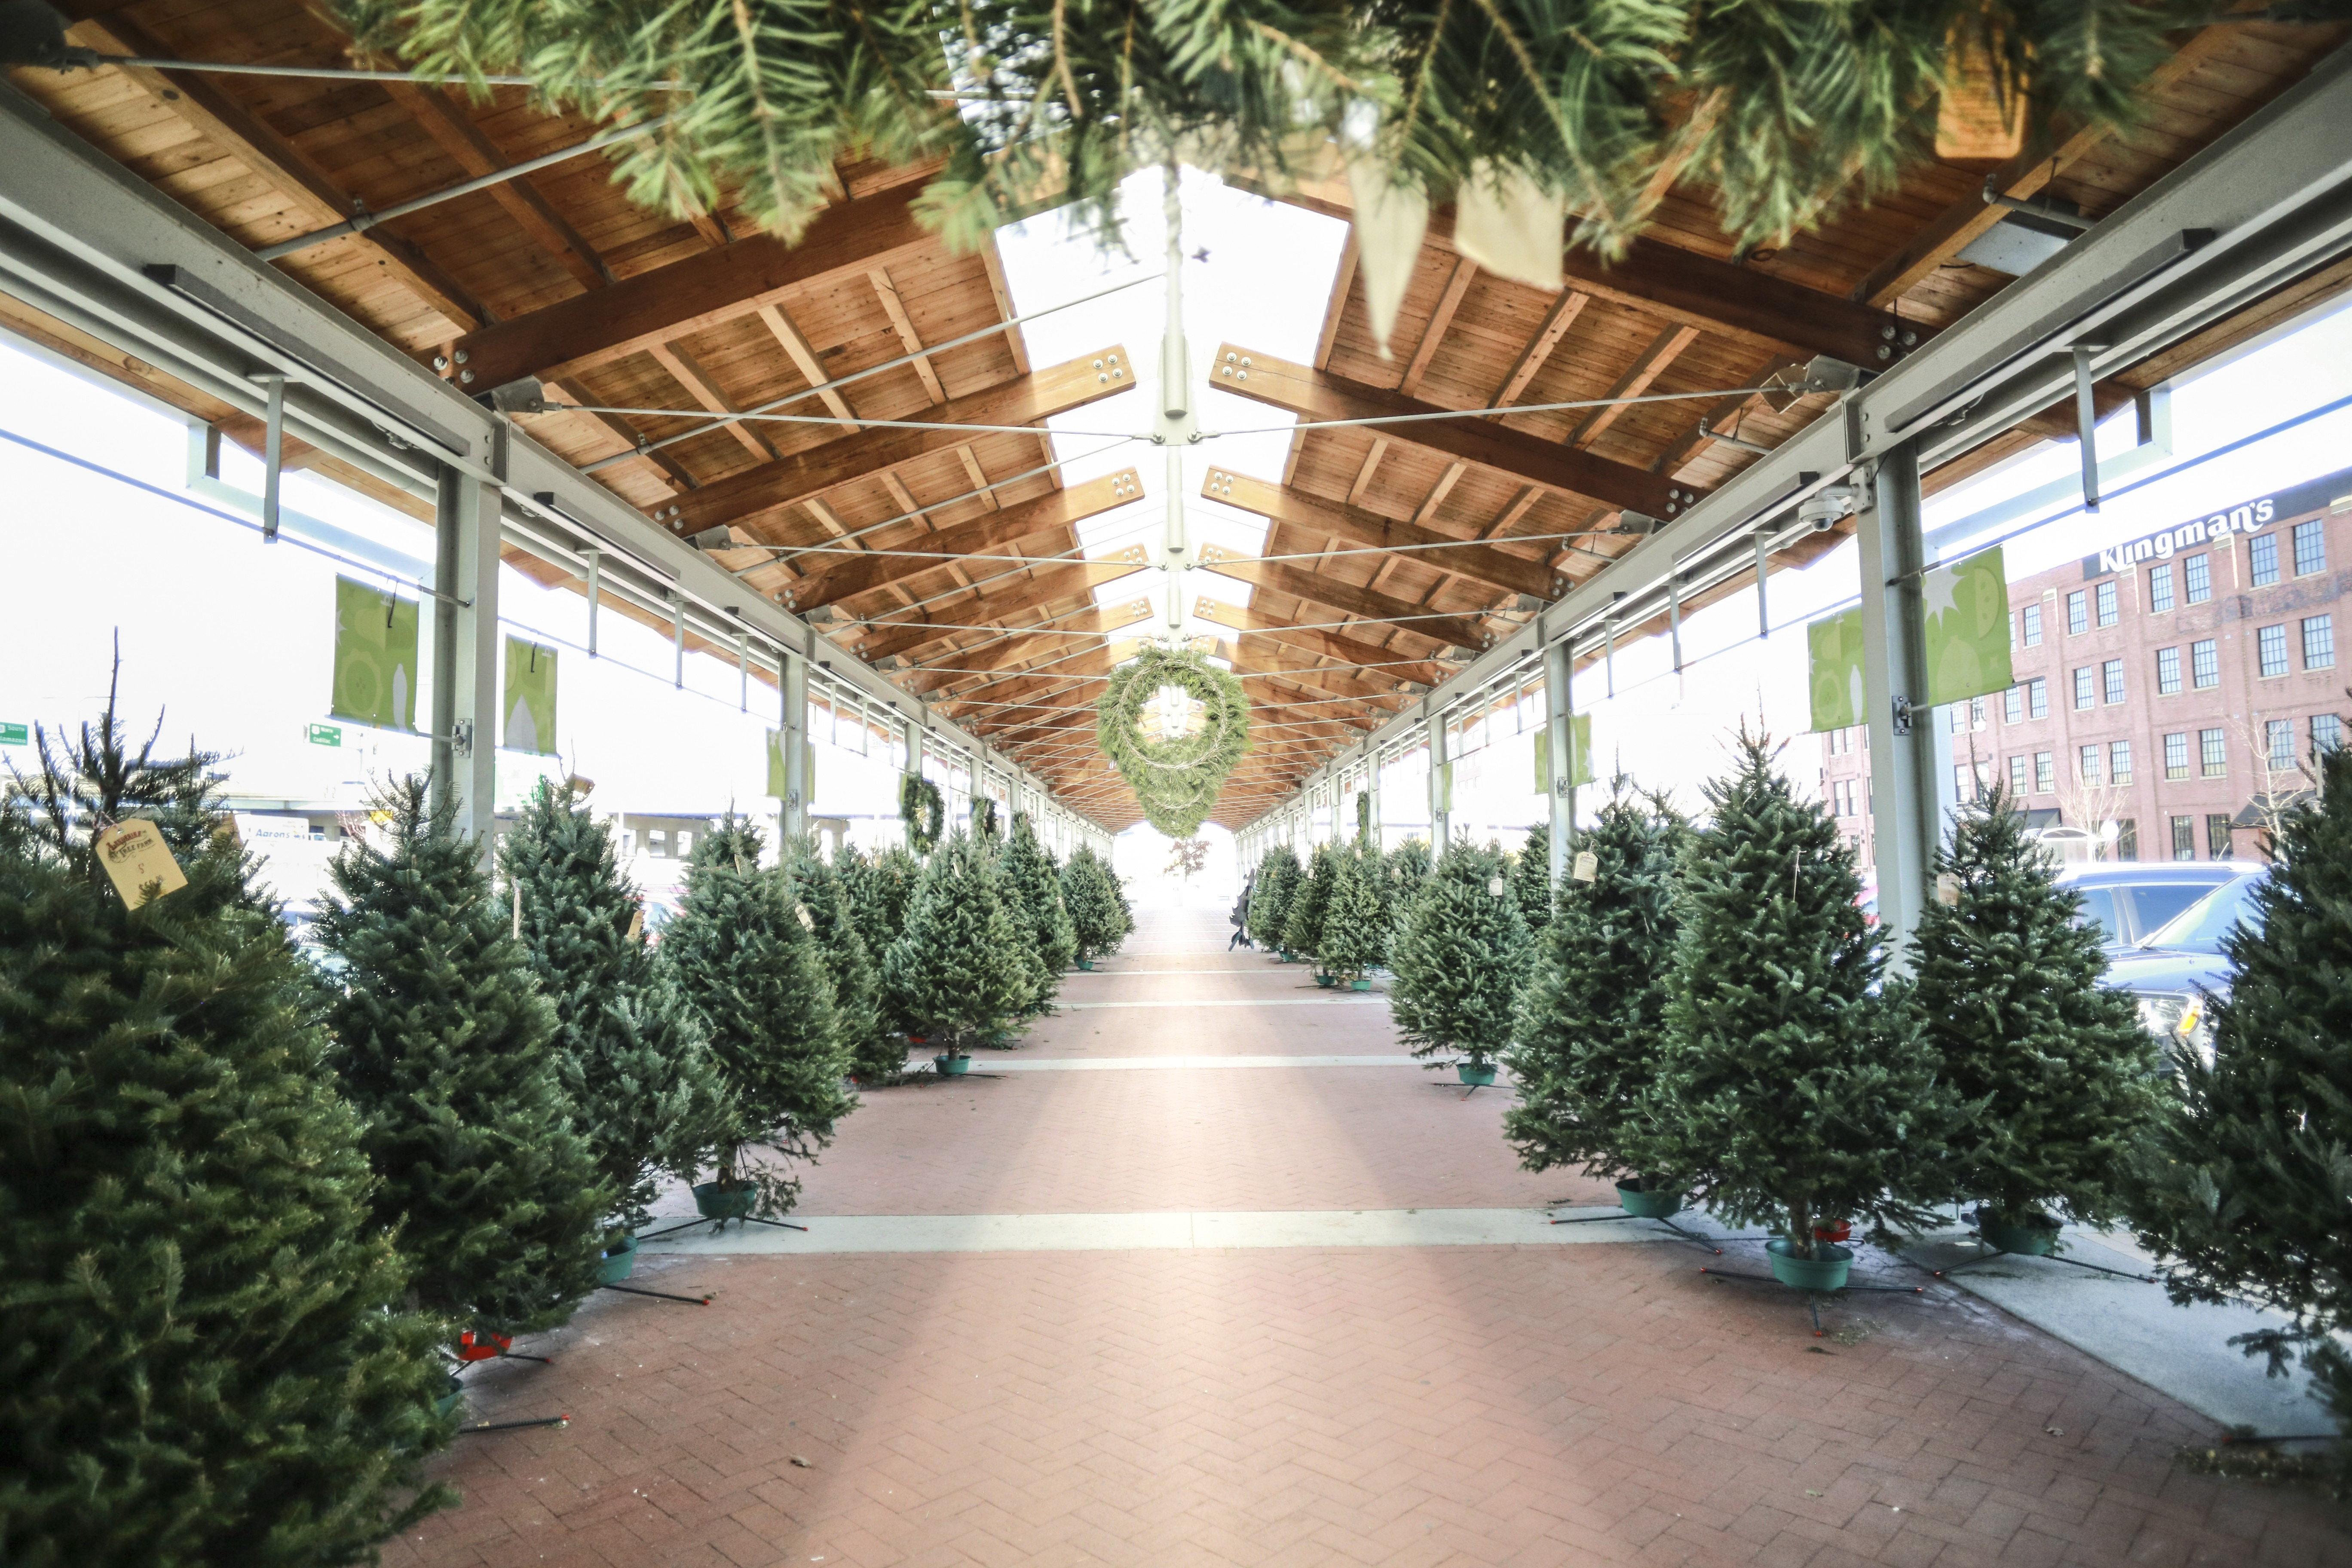 from november 17 december 16 find the perfect holiday wreath or tree for your home at our christmas tree lot hosted by lenderink tree farms